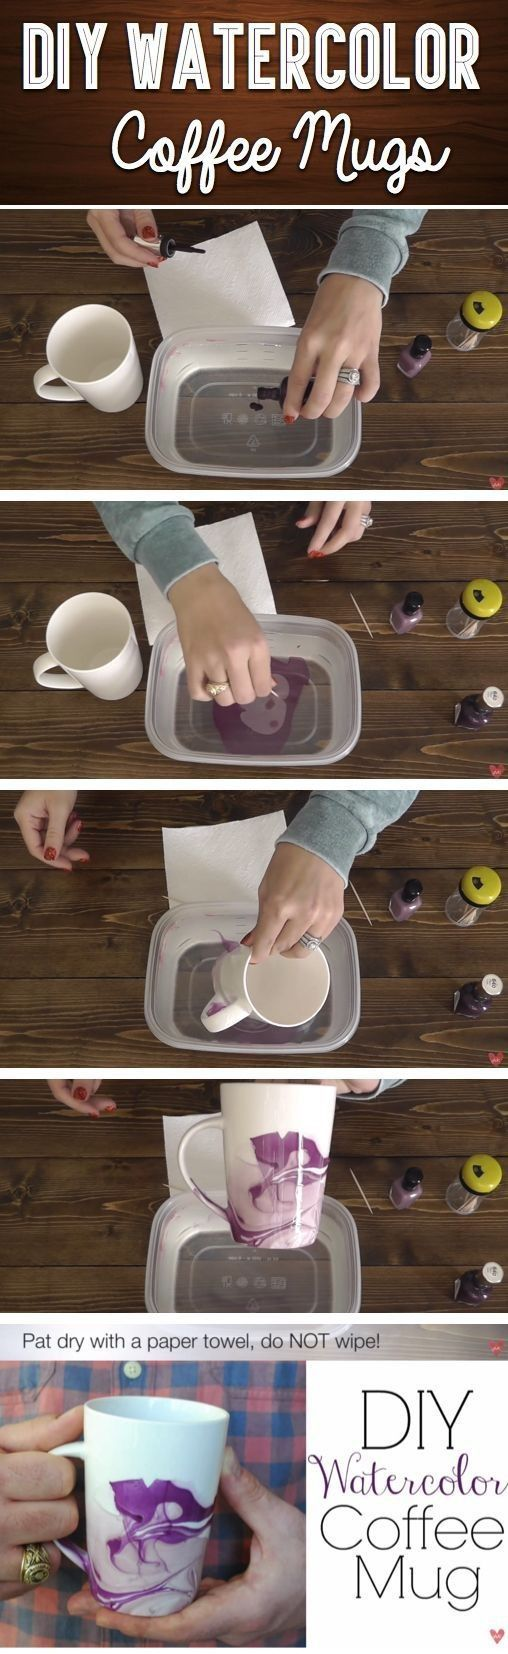 DIY Watercolor Coffee Mug